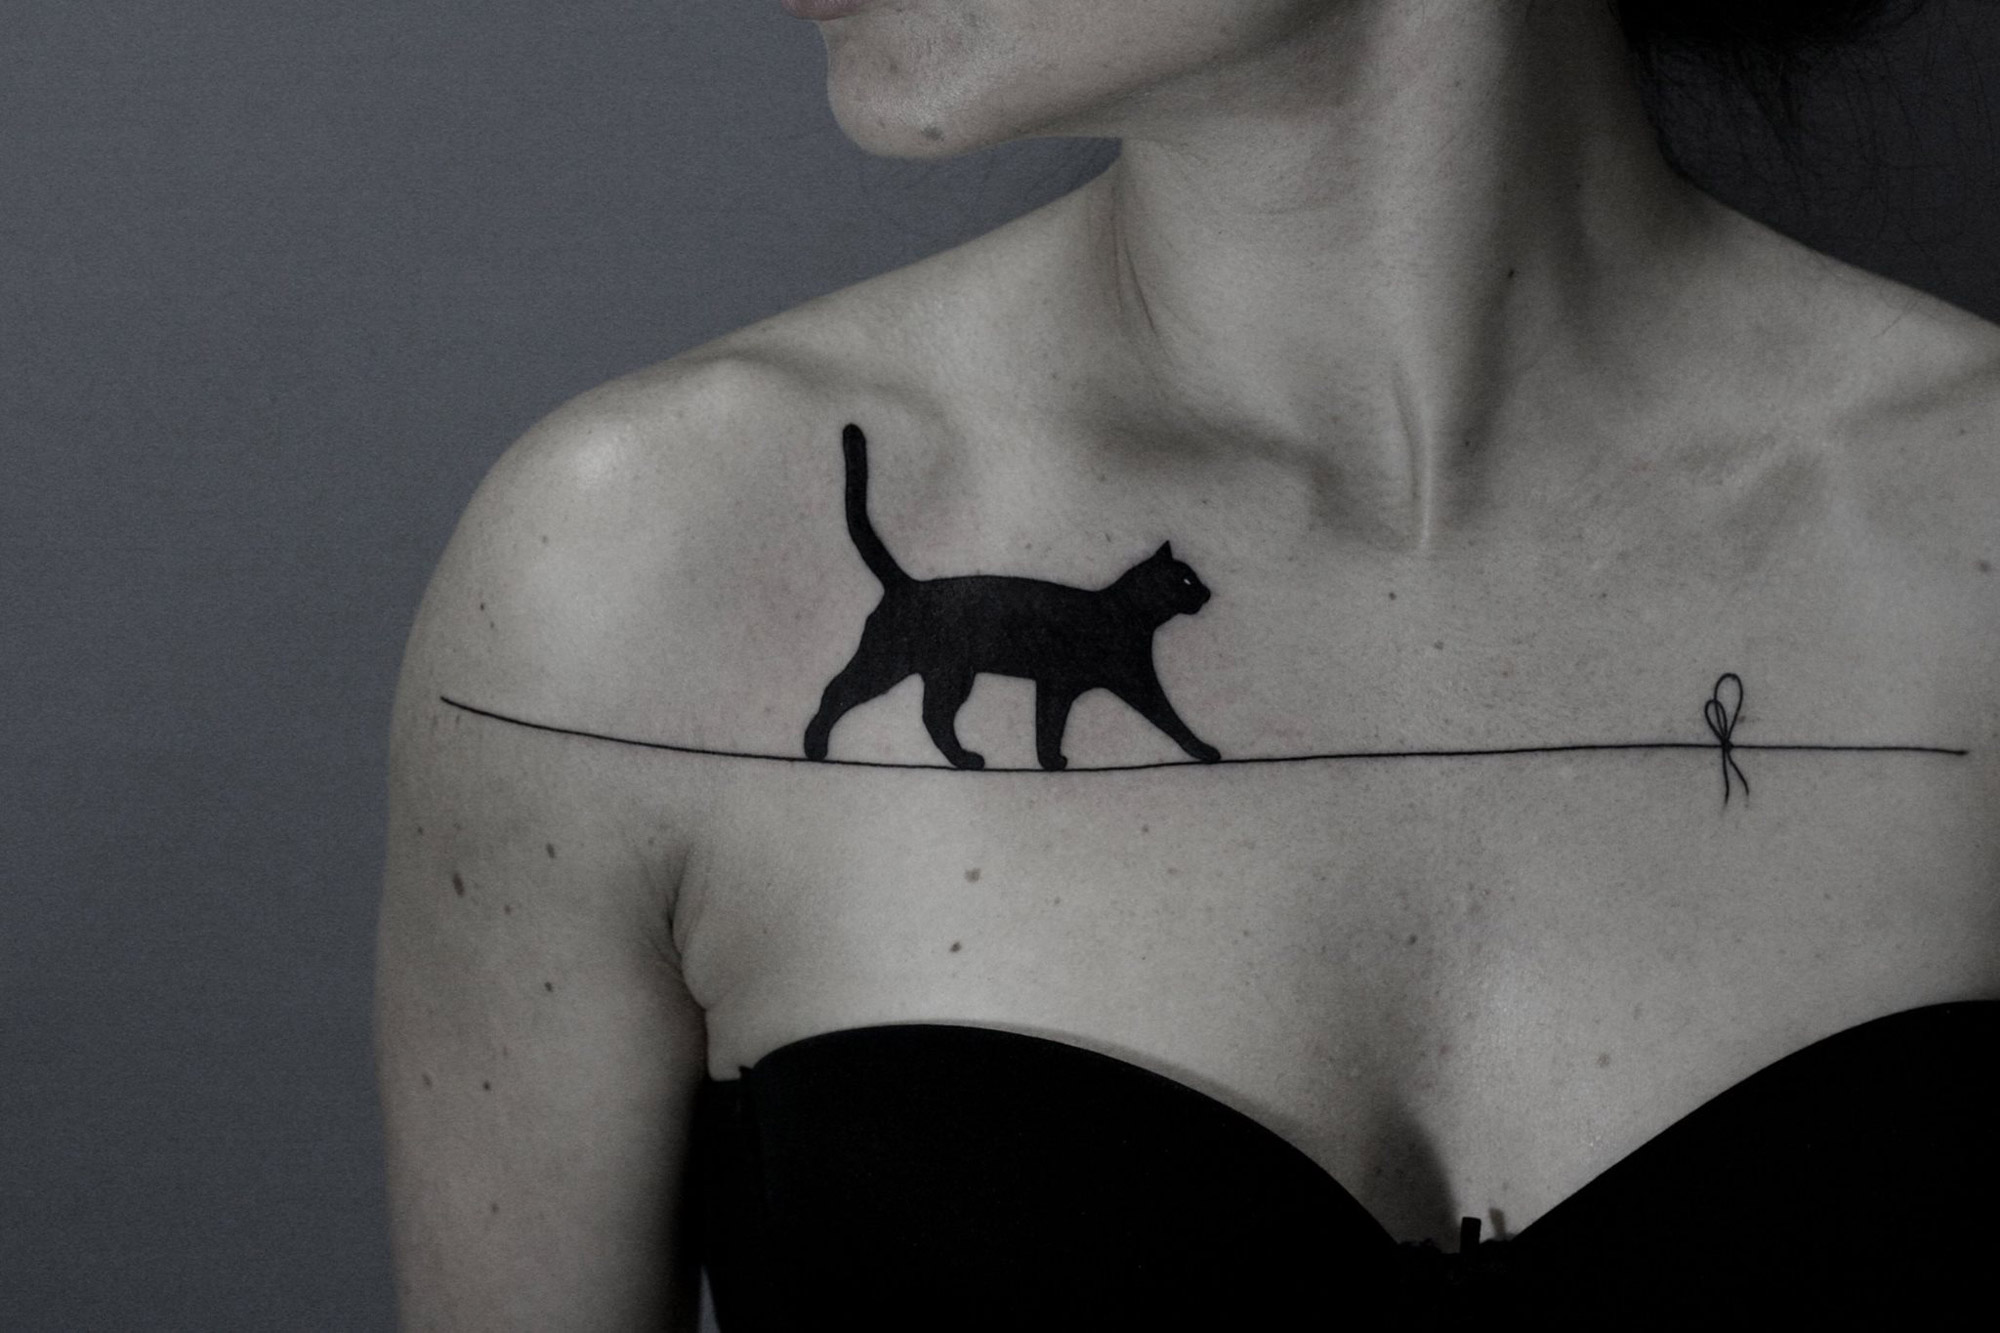 tattoo of a cat walking the tightrope